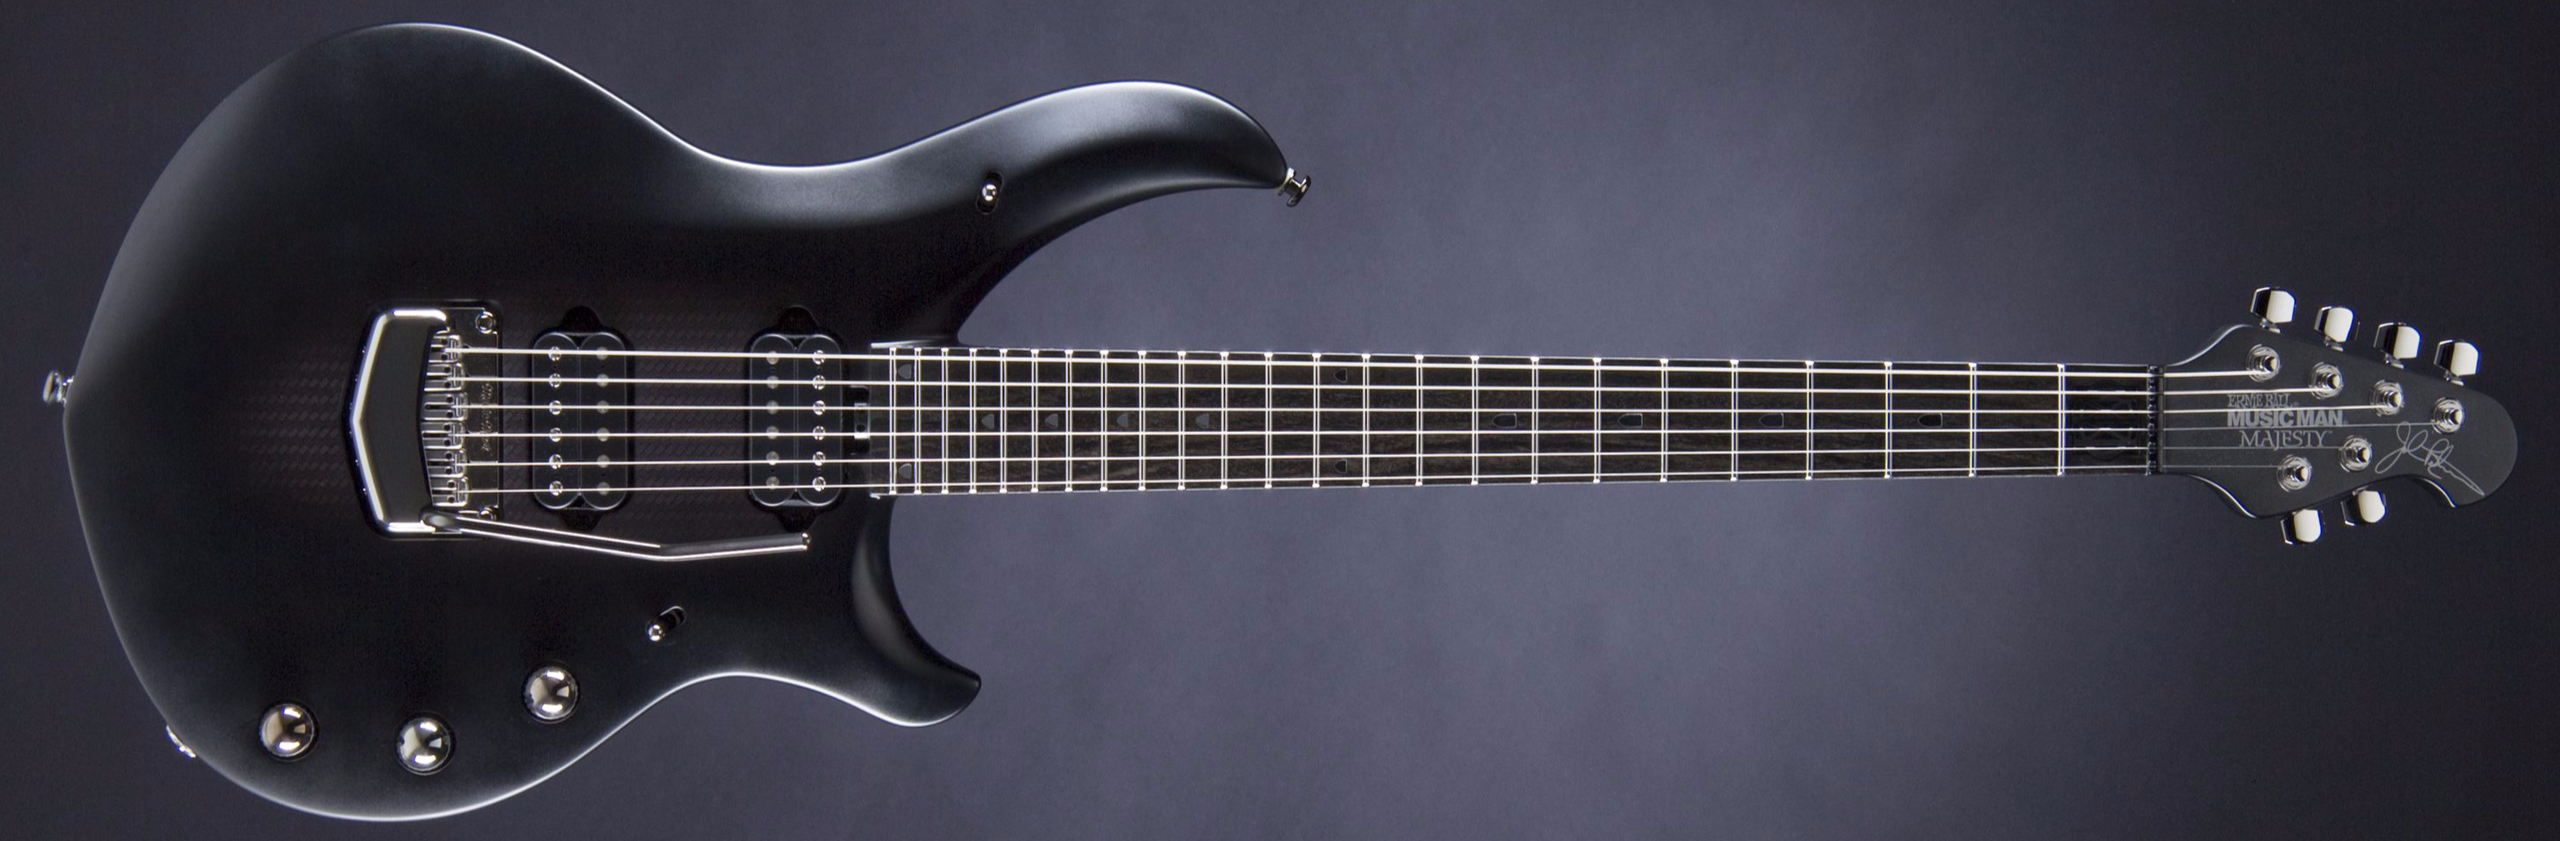 MUSIC MAN John Petrucci Majesty Polar Noir